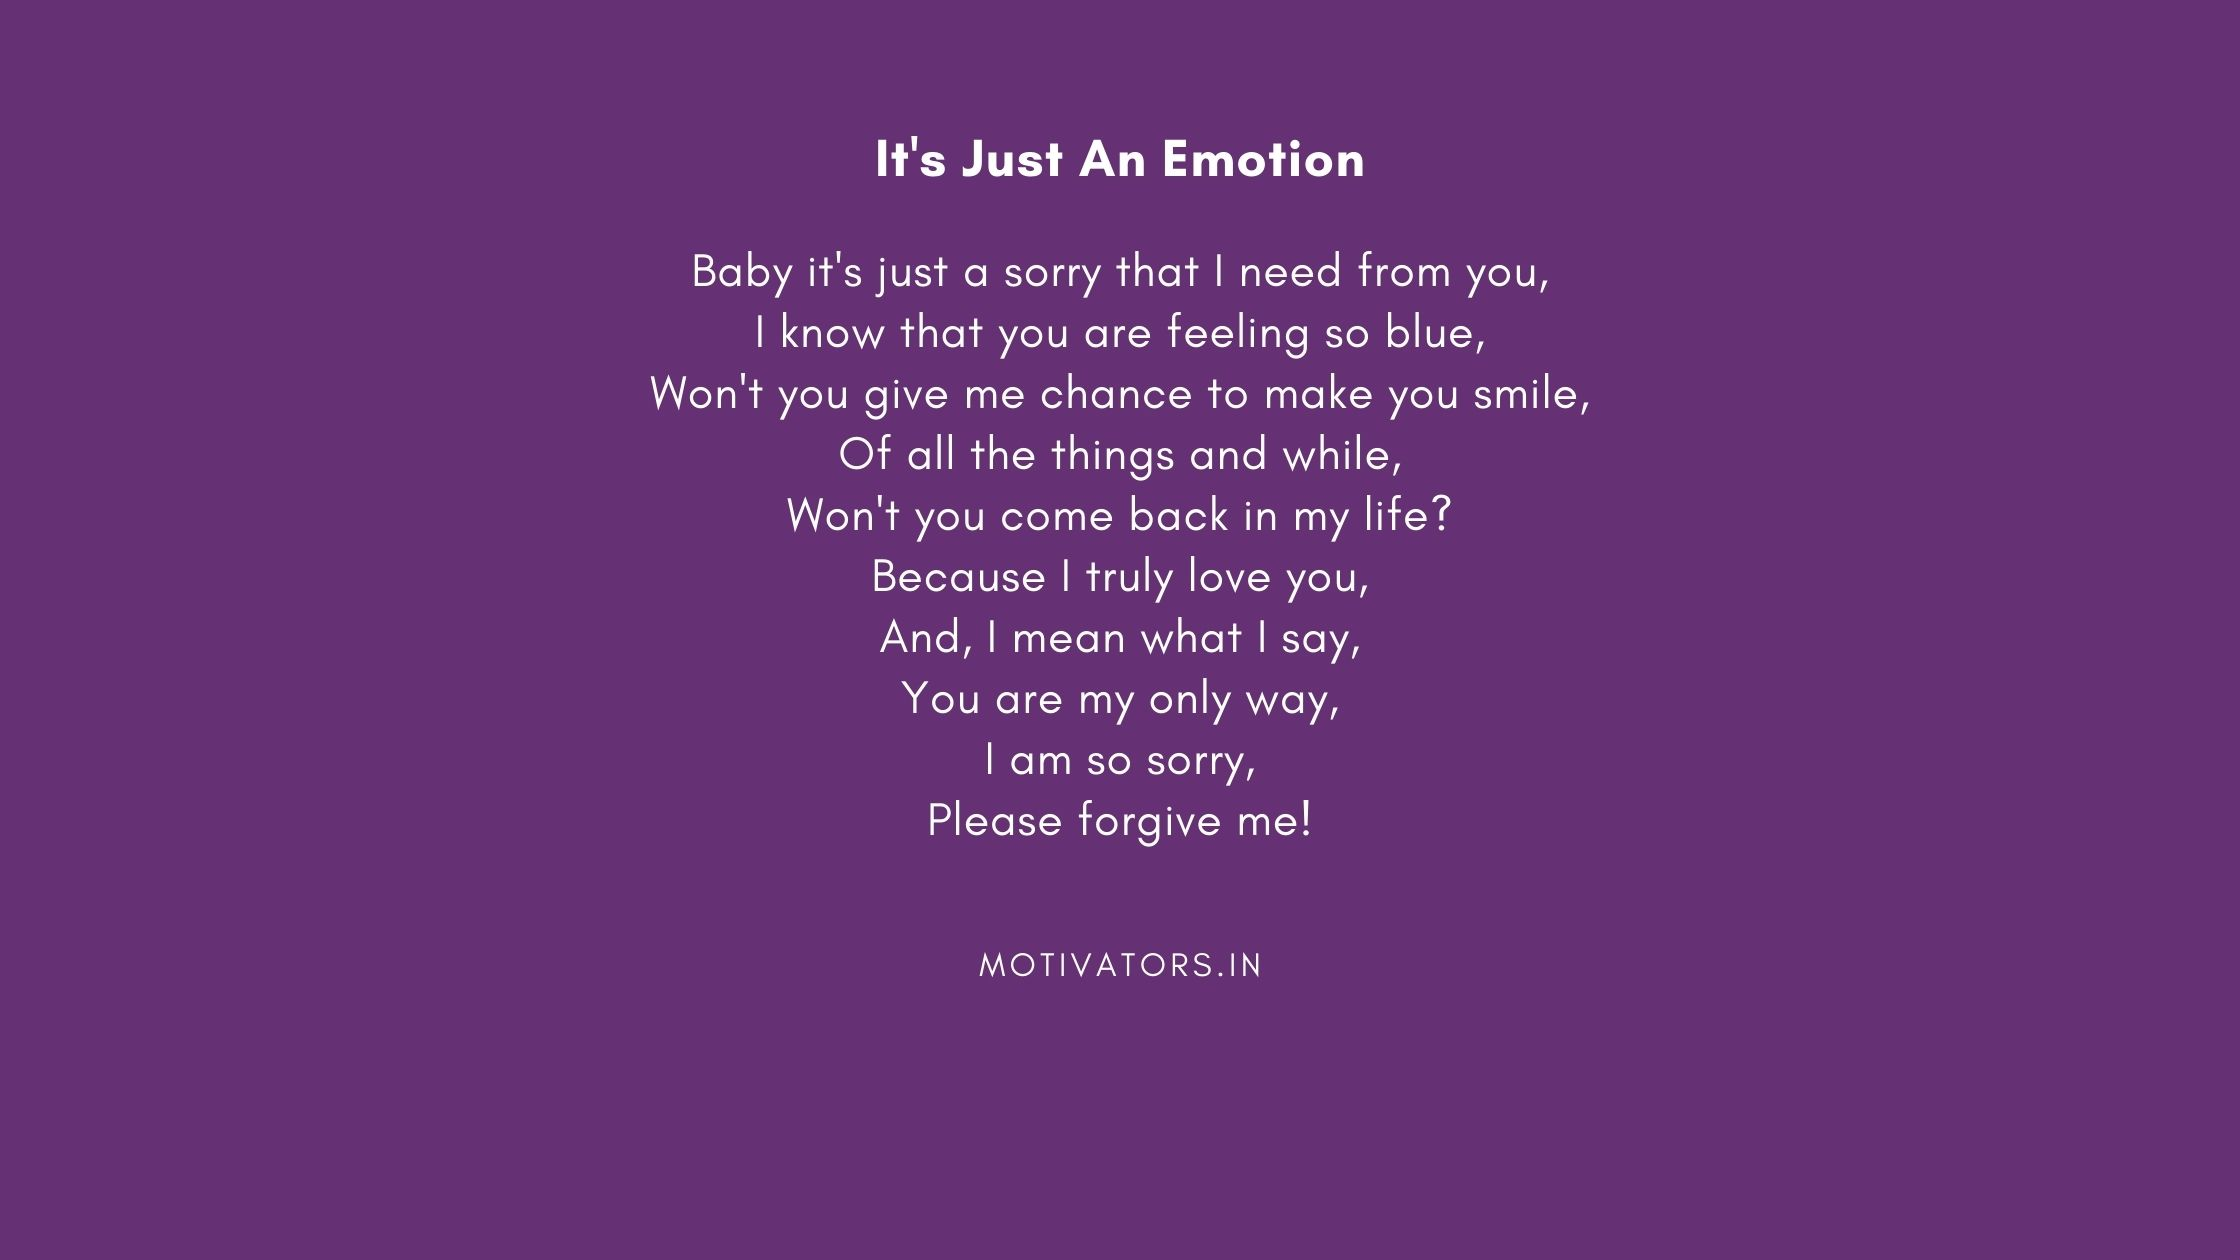 It's Just An Emotion